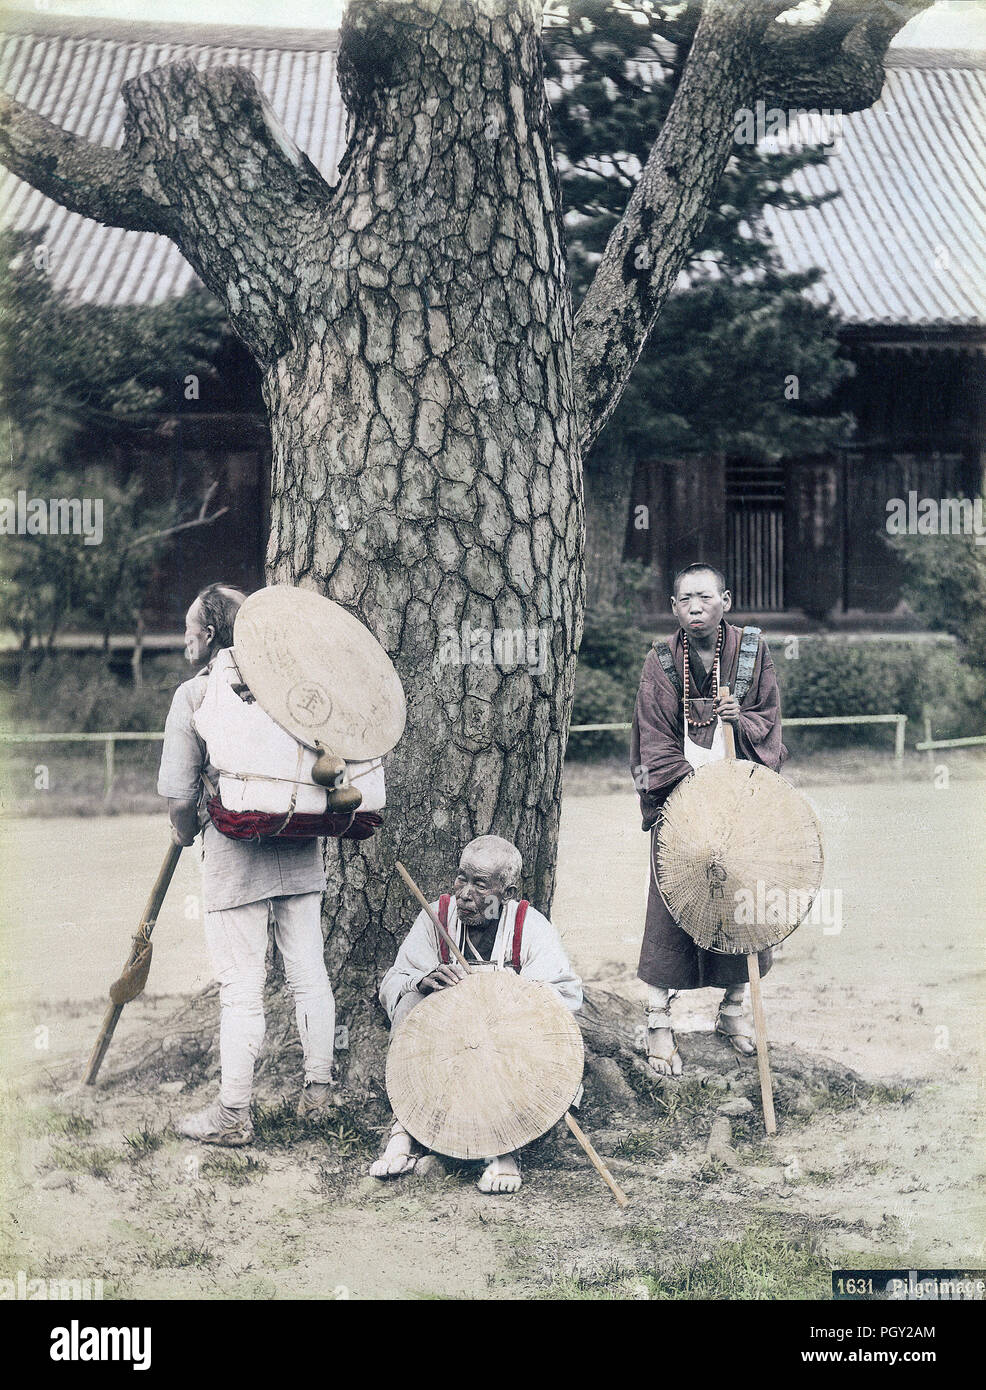 [ 1880s Japan - Buddhist Pilgrims Resting at Temple ] —   Three Pilgrims are resting at a weathered pine tree in what appears to be the grounds of a buddhist temple. They are wearing white vestments, sugegasa (sedge-woven hats) and waraji (straw sandals). They are also holding long walking sticks and carry primitive backpacks. They are on a pilgrimage to Kotohira-gu shrine, better known as Konpira-san, in Kagawa Prefecture.  19th century vintage albumen photograph. - Stock Image